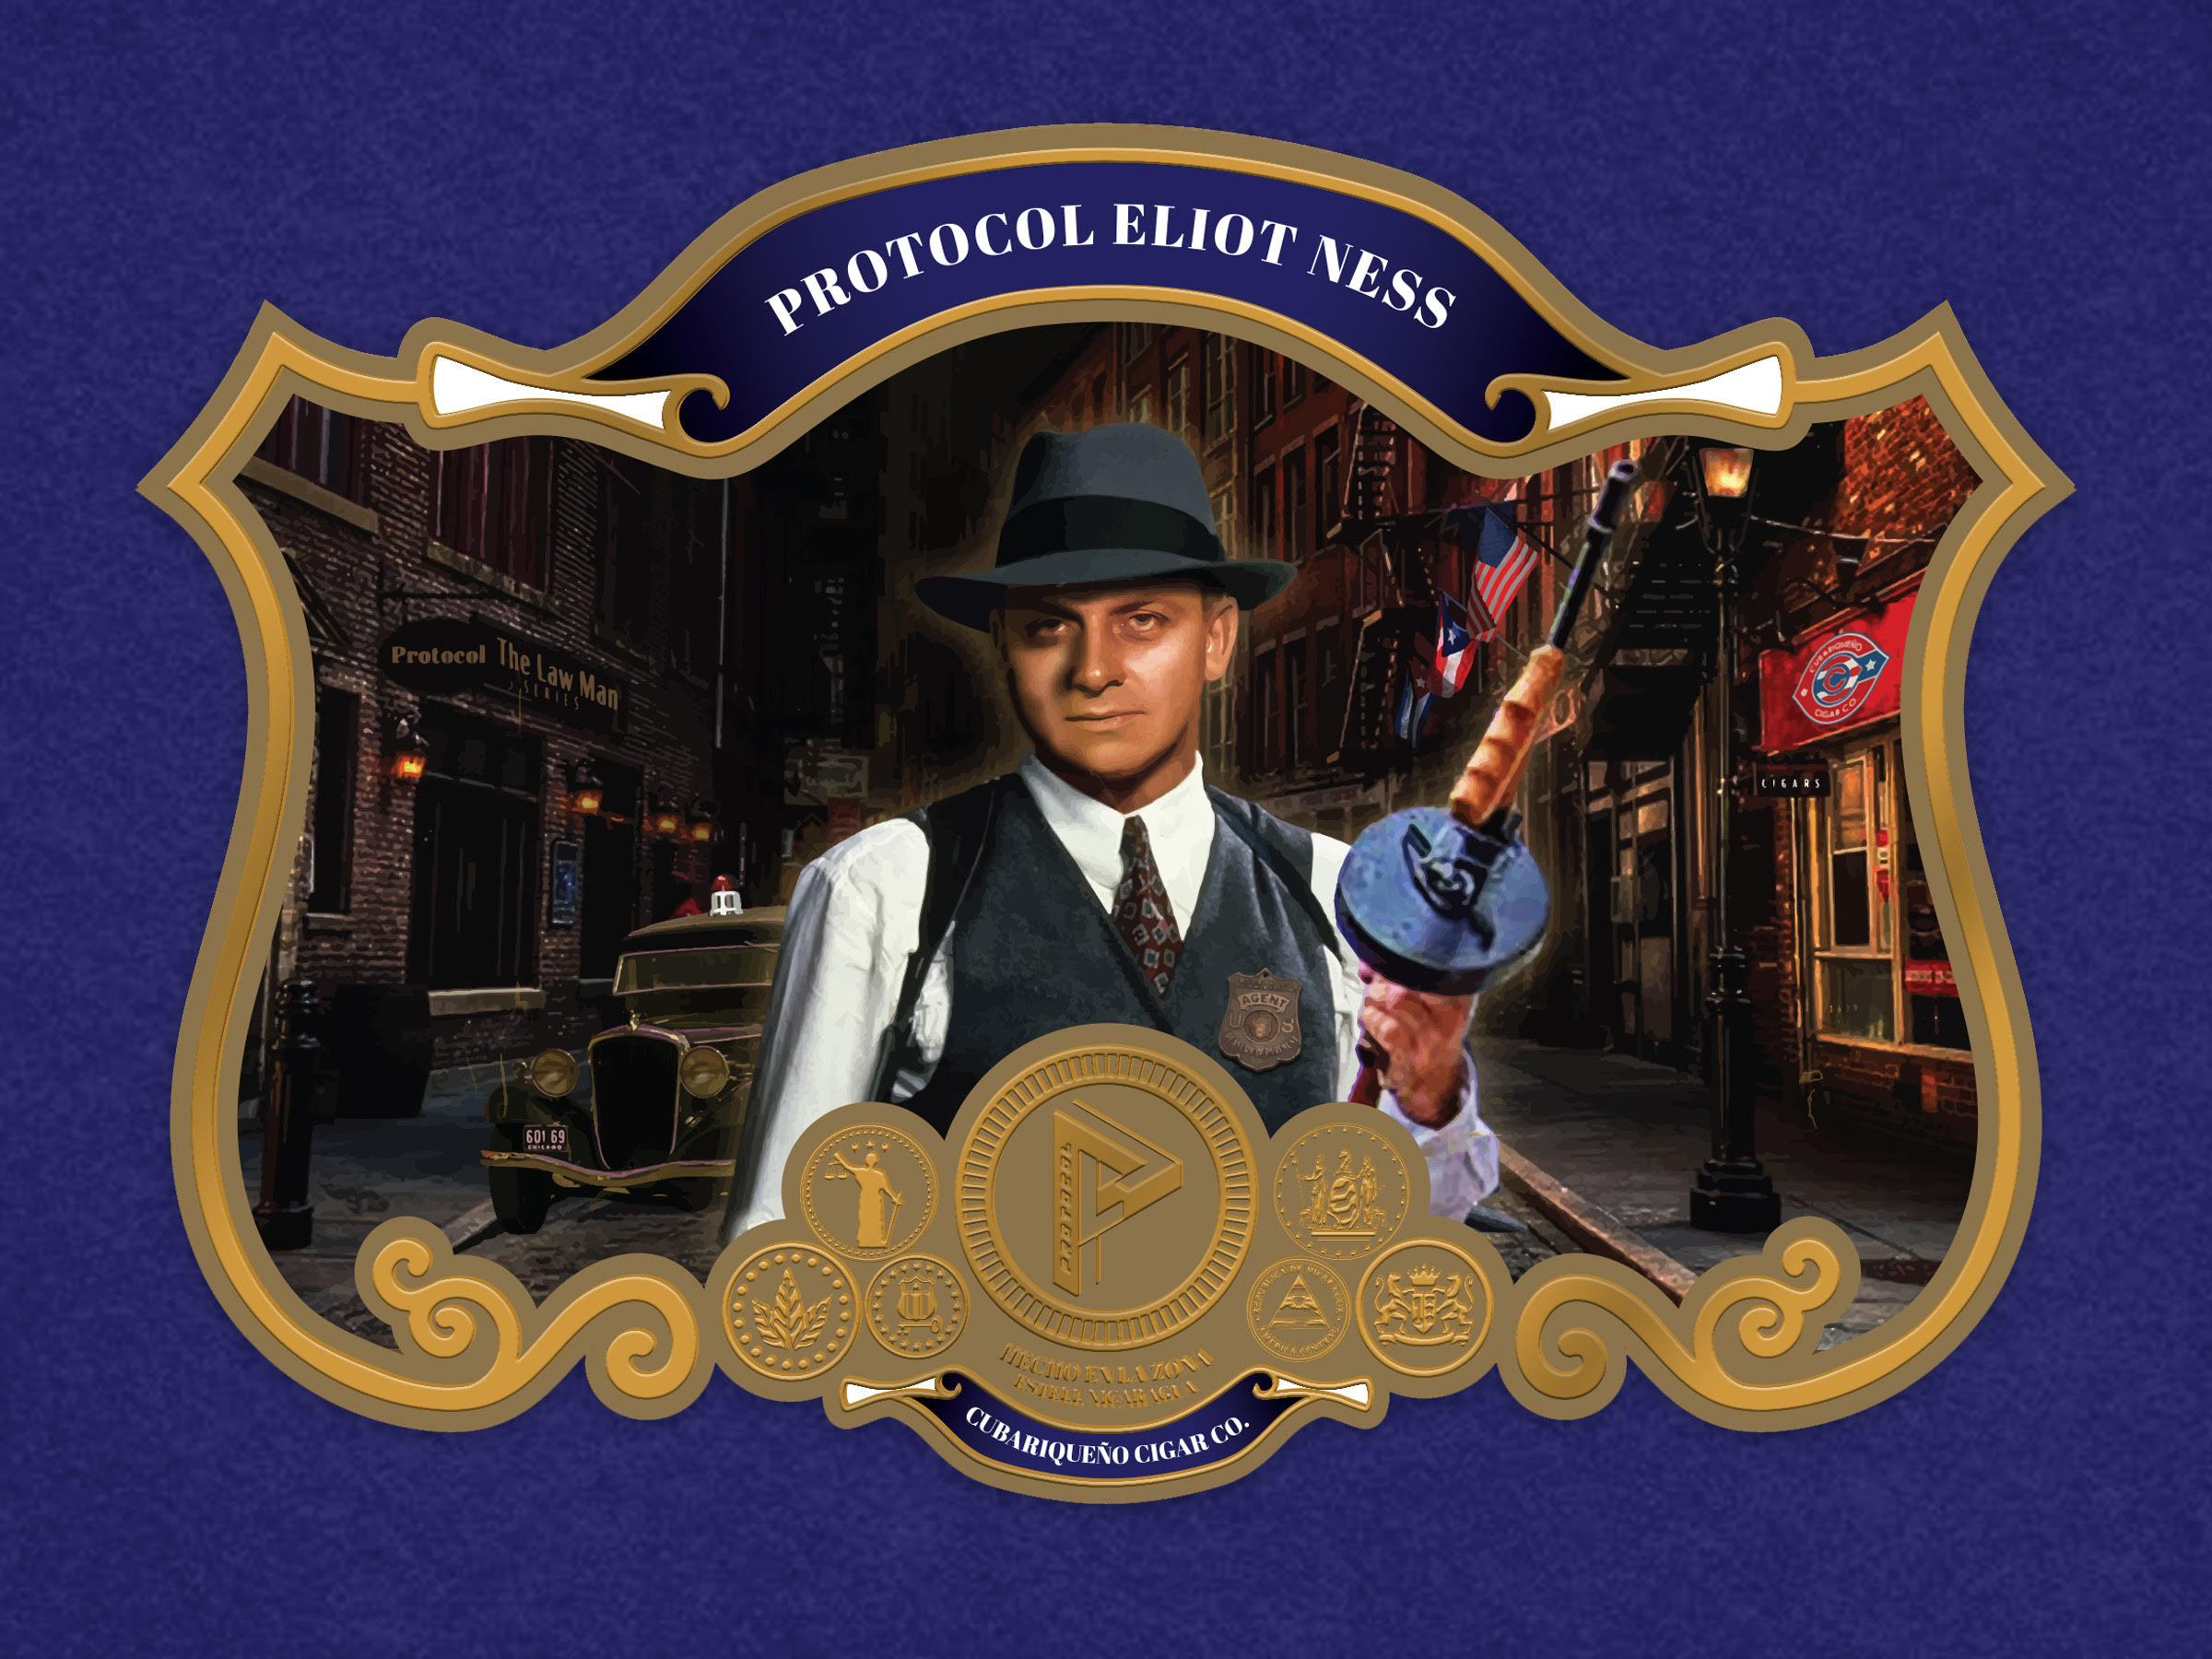 Cigar News: Protocol Eliot Ness Scheduled for Fall 2020